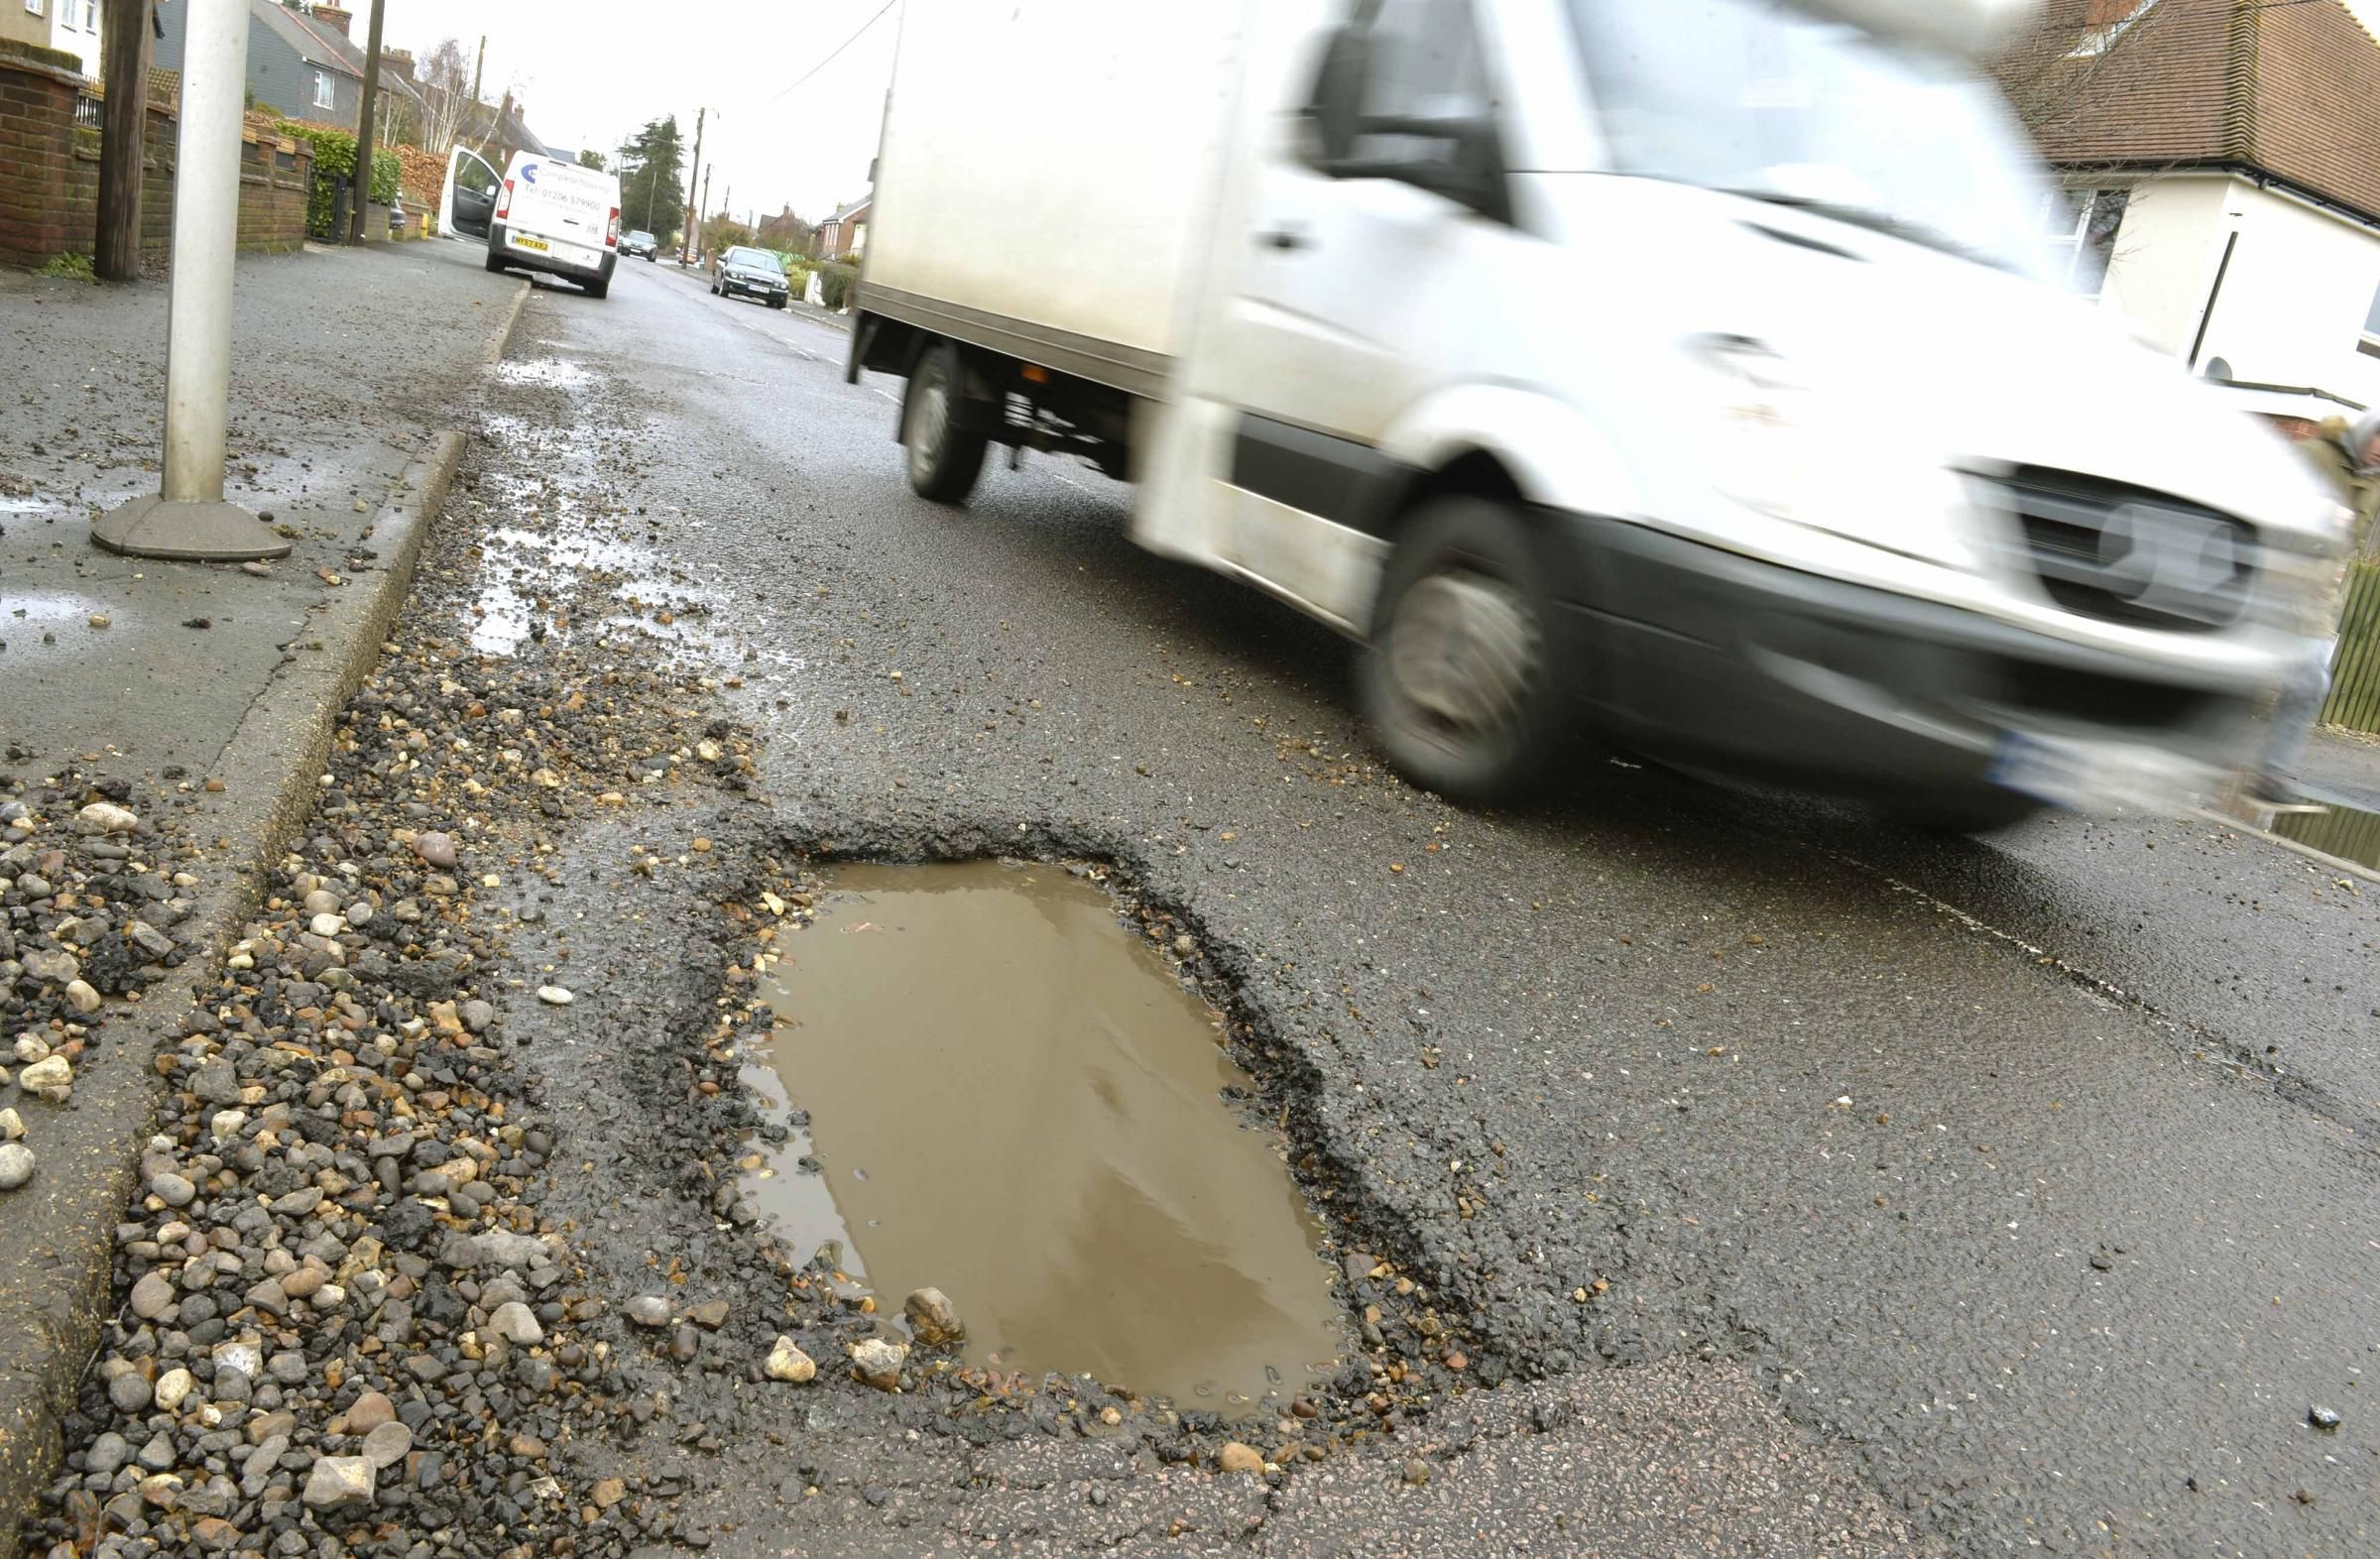 Pot Holes and damaged road surface in Rectory Road, Wivenhoe